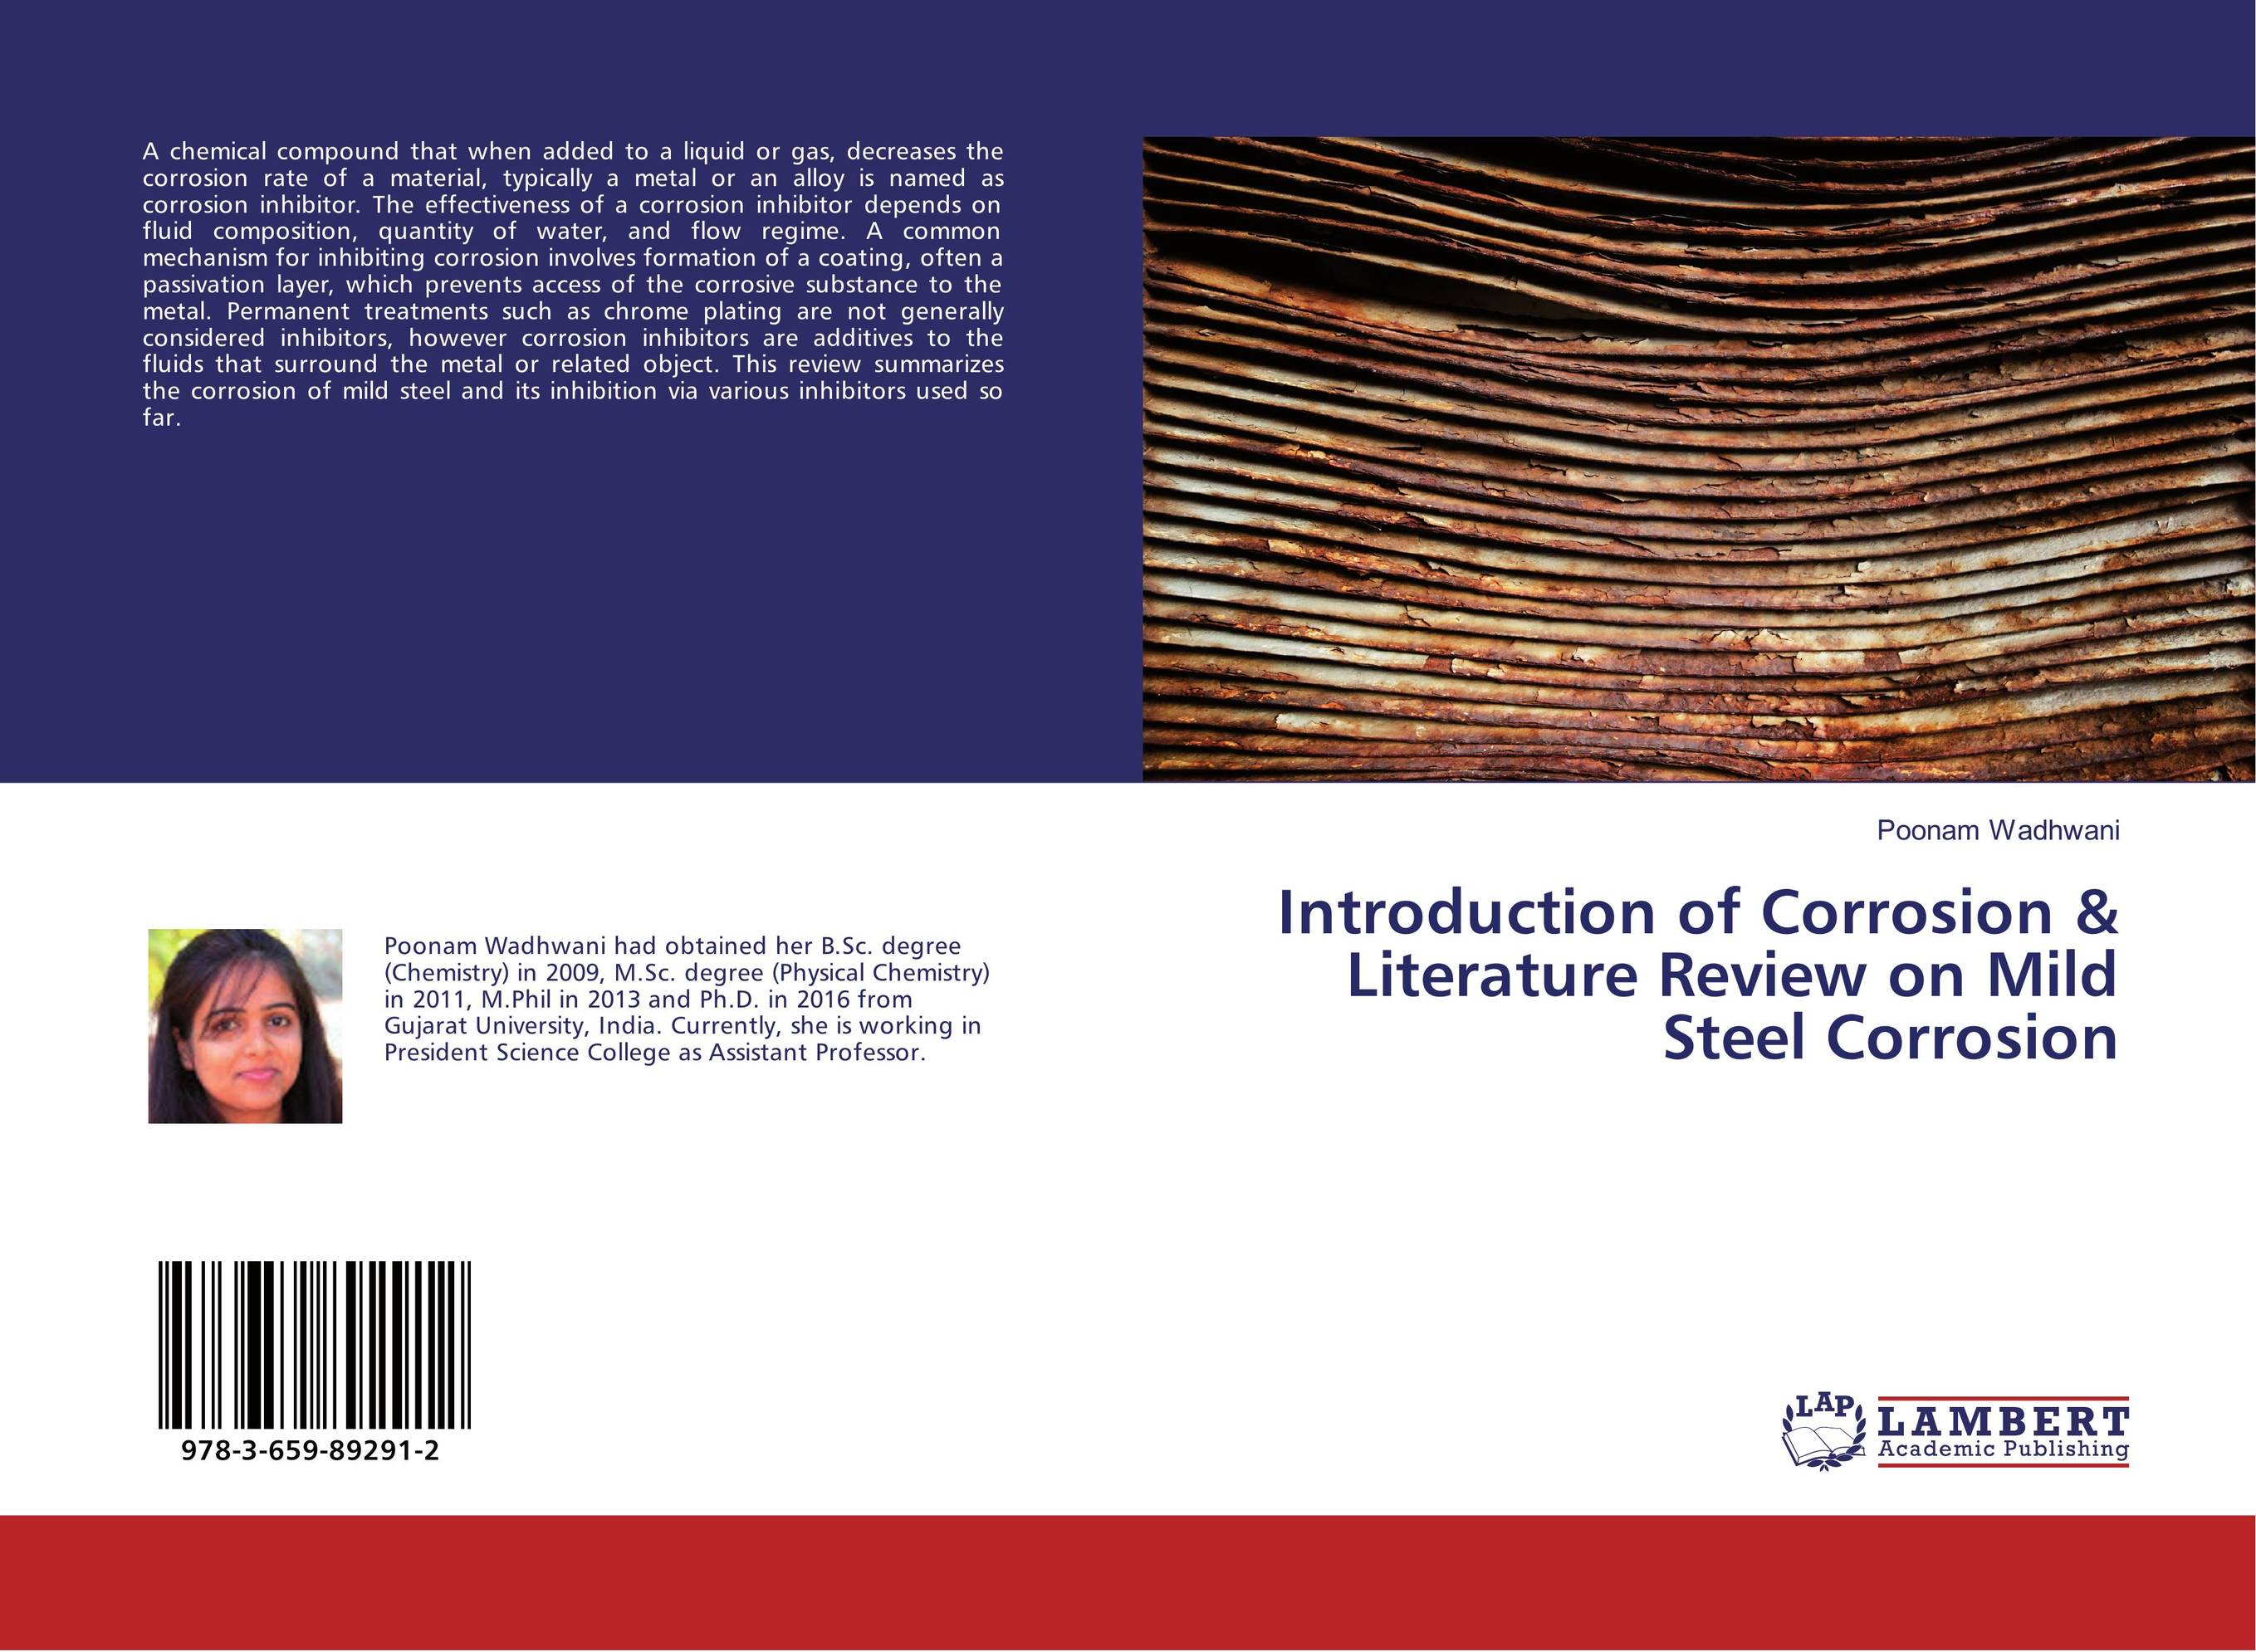 Introduction of Corrosion & Literature Review on Mild Steel Corrosion